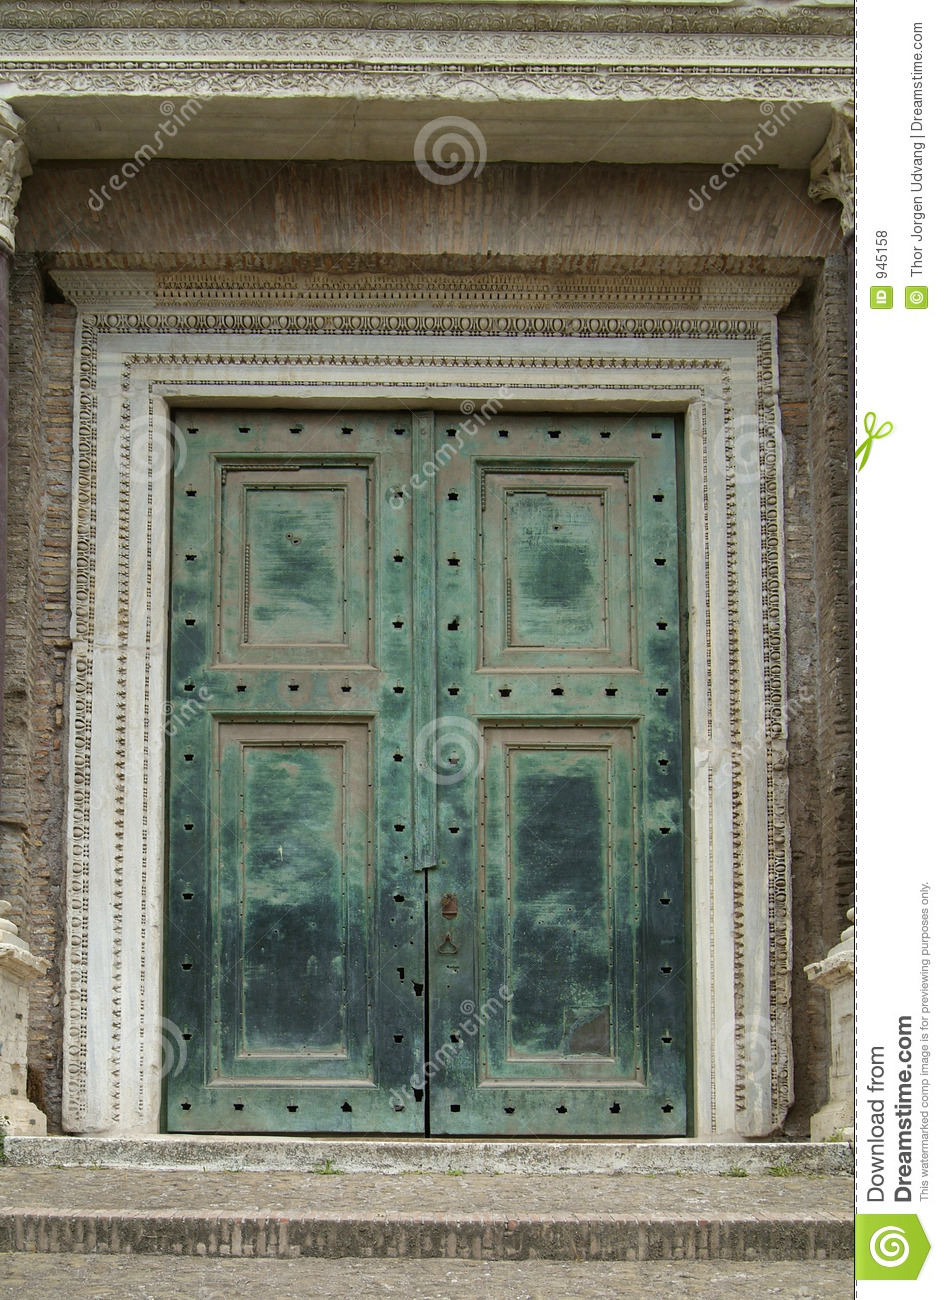 Royalty-Free Stock Photo & Heavy green door in Rome stock photo. Image of entrance - 945158